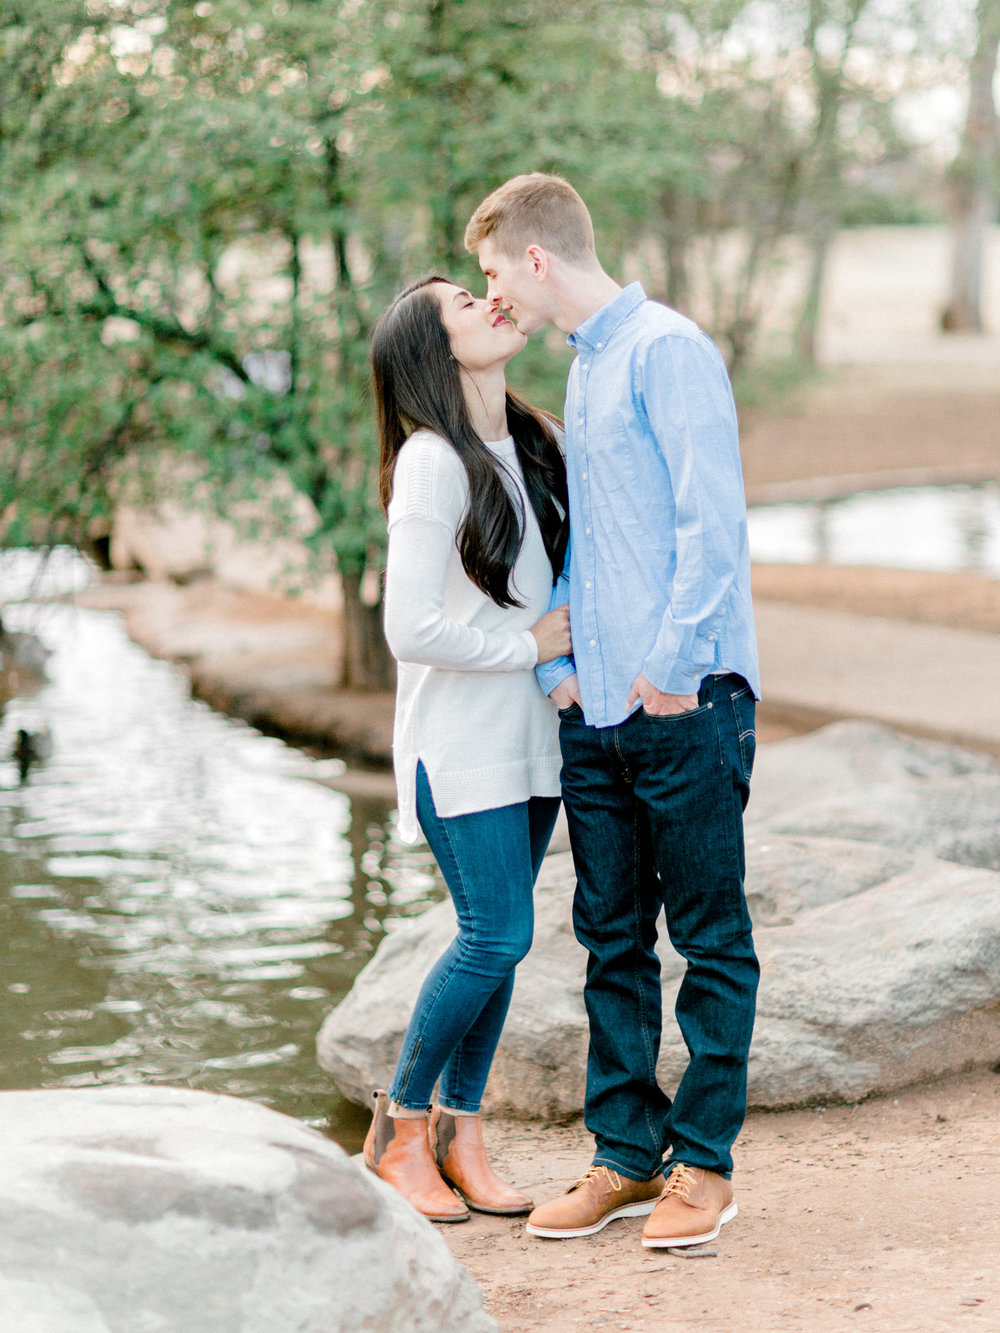 SAFB Engagement Photos - Timeless Photography